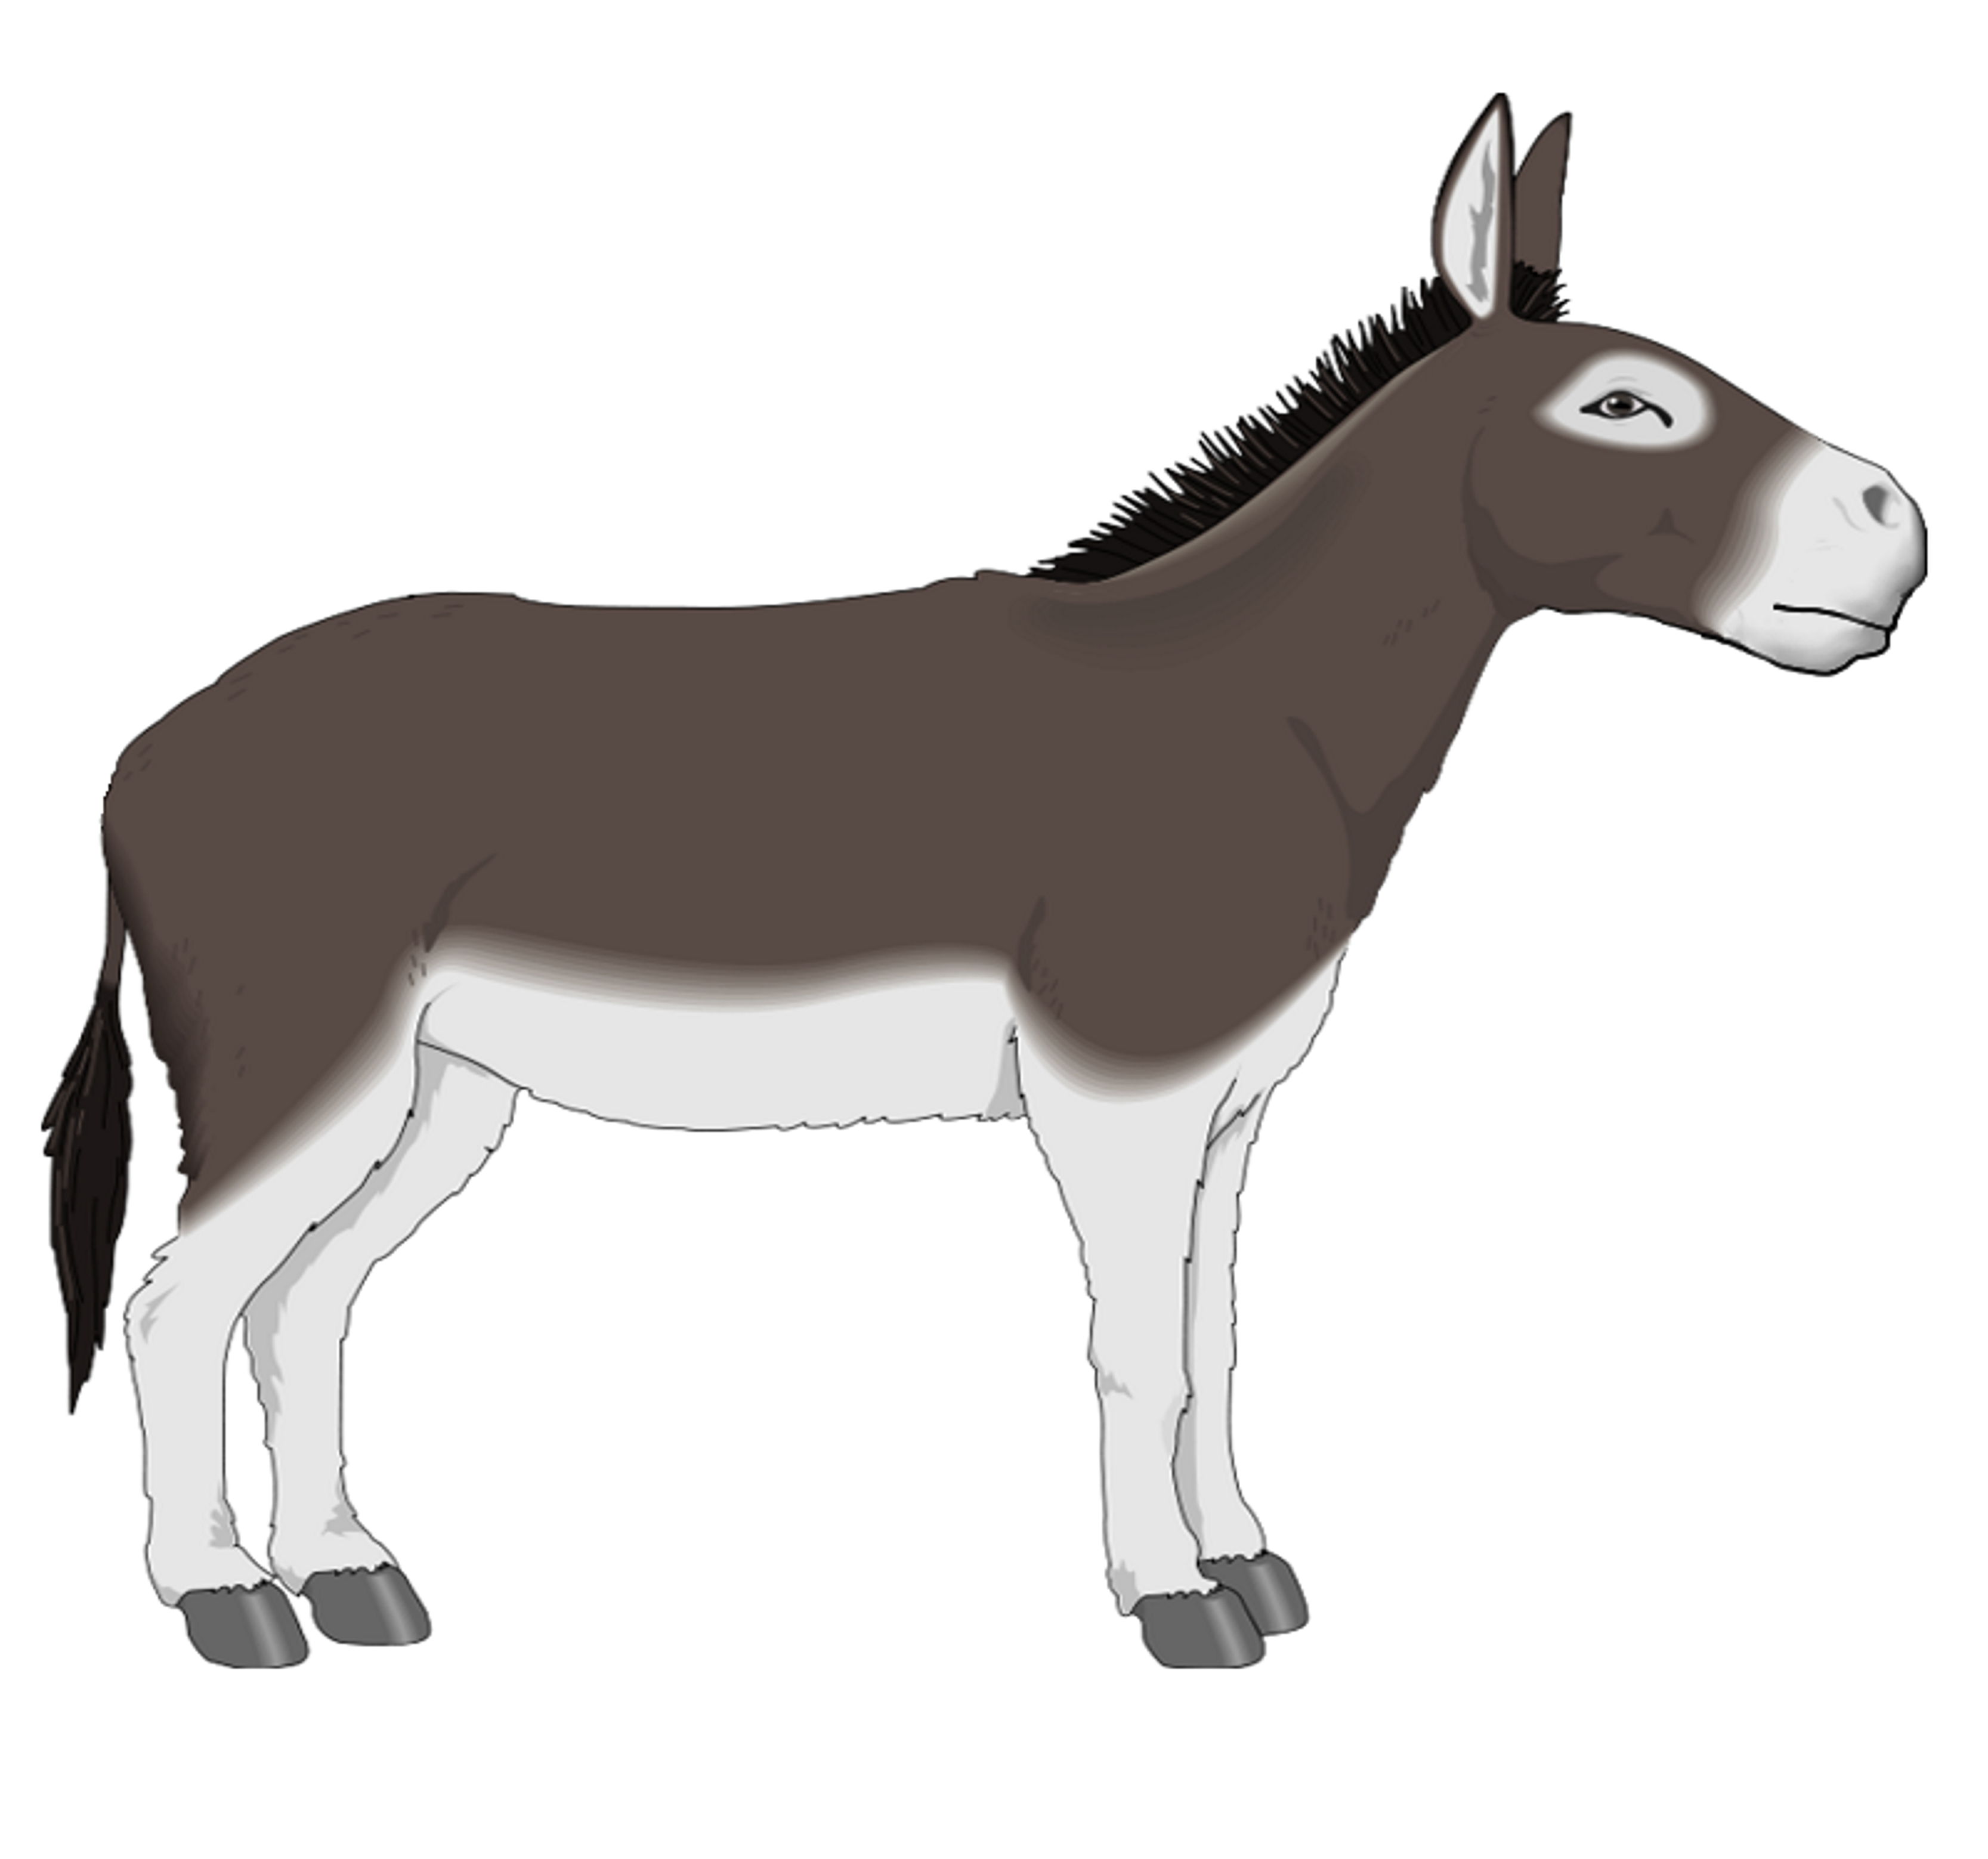 Free Donkey Clipart, Download Free Clip Art, Free Clip Art.